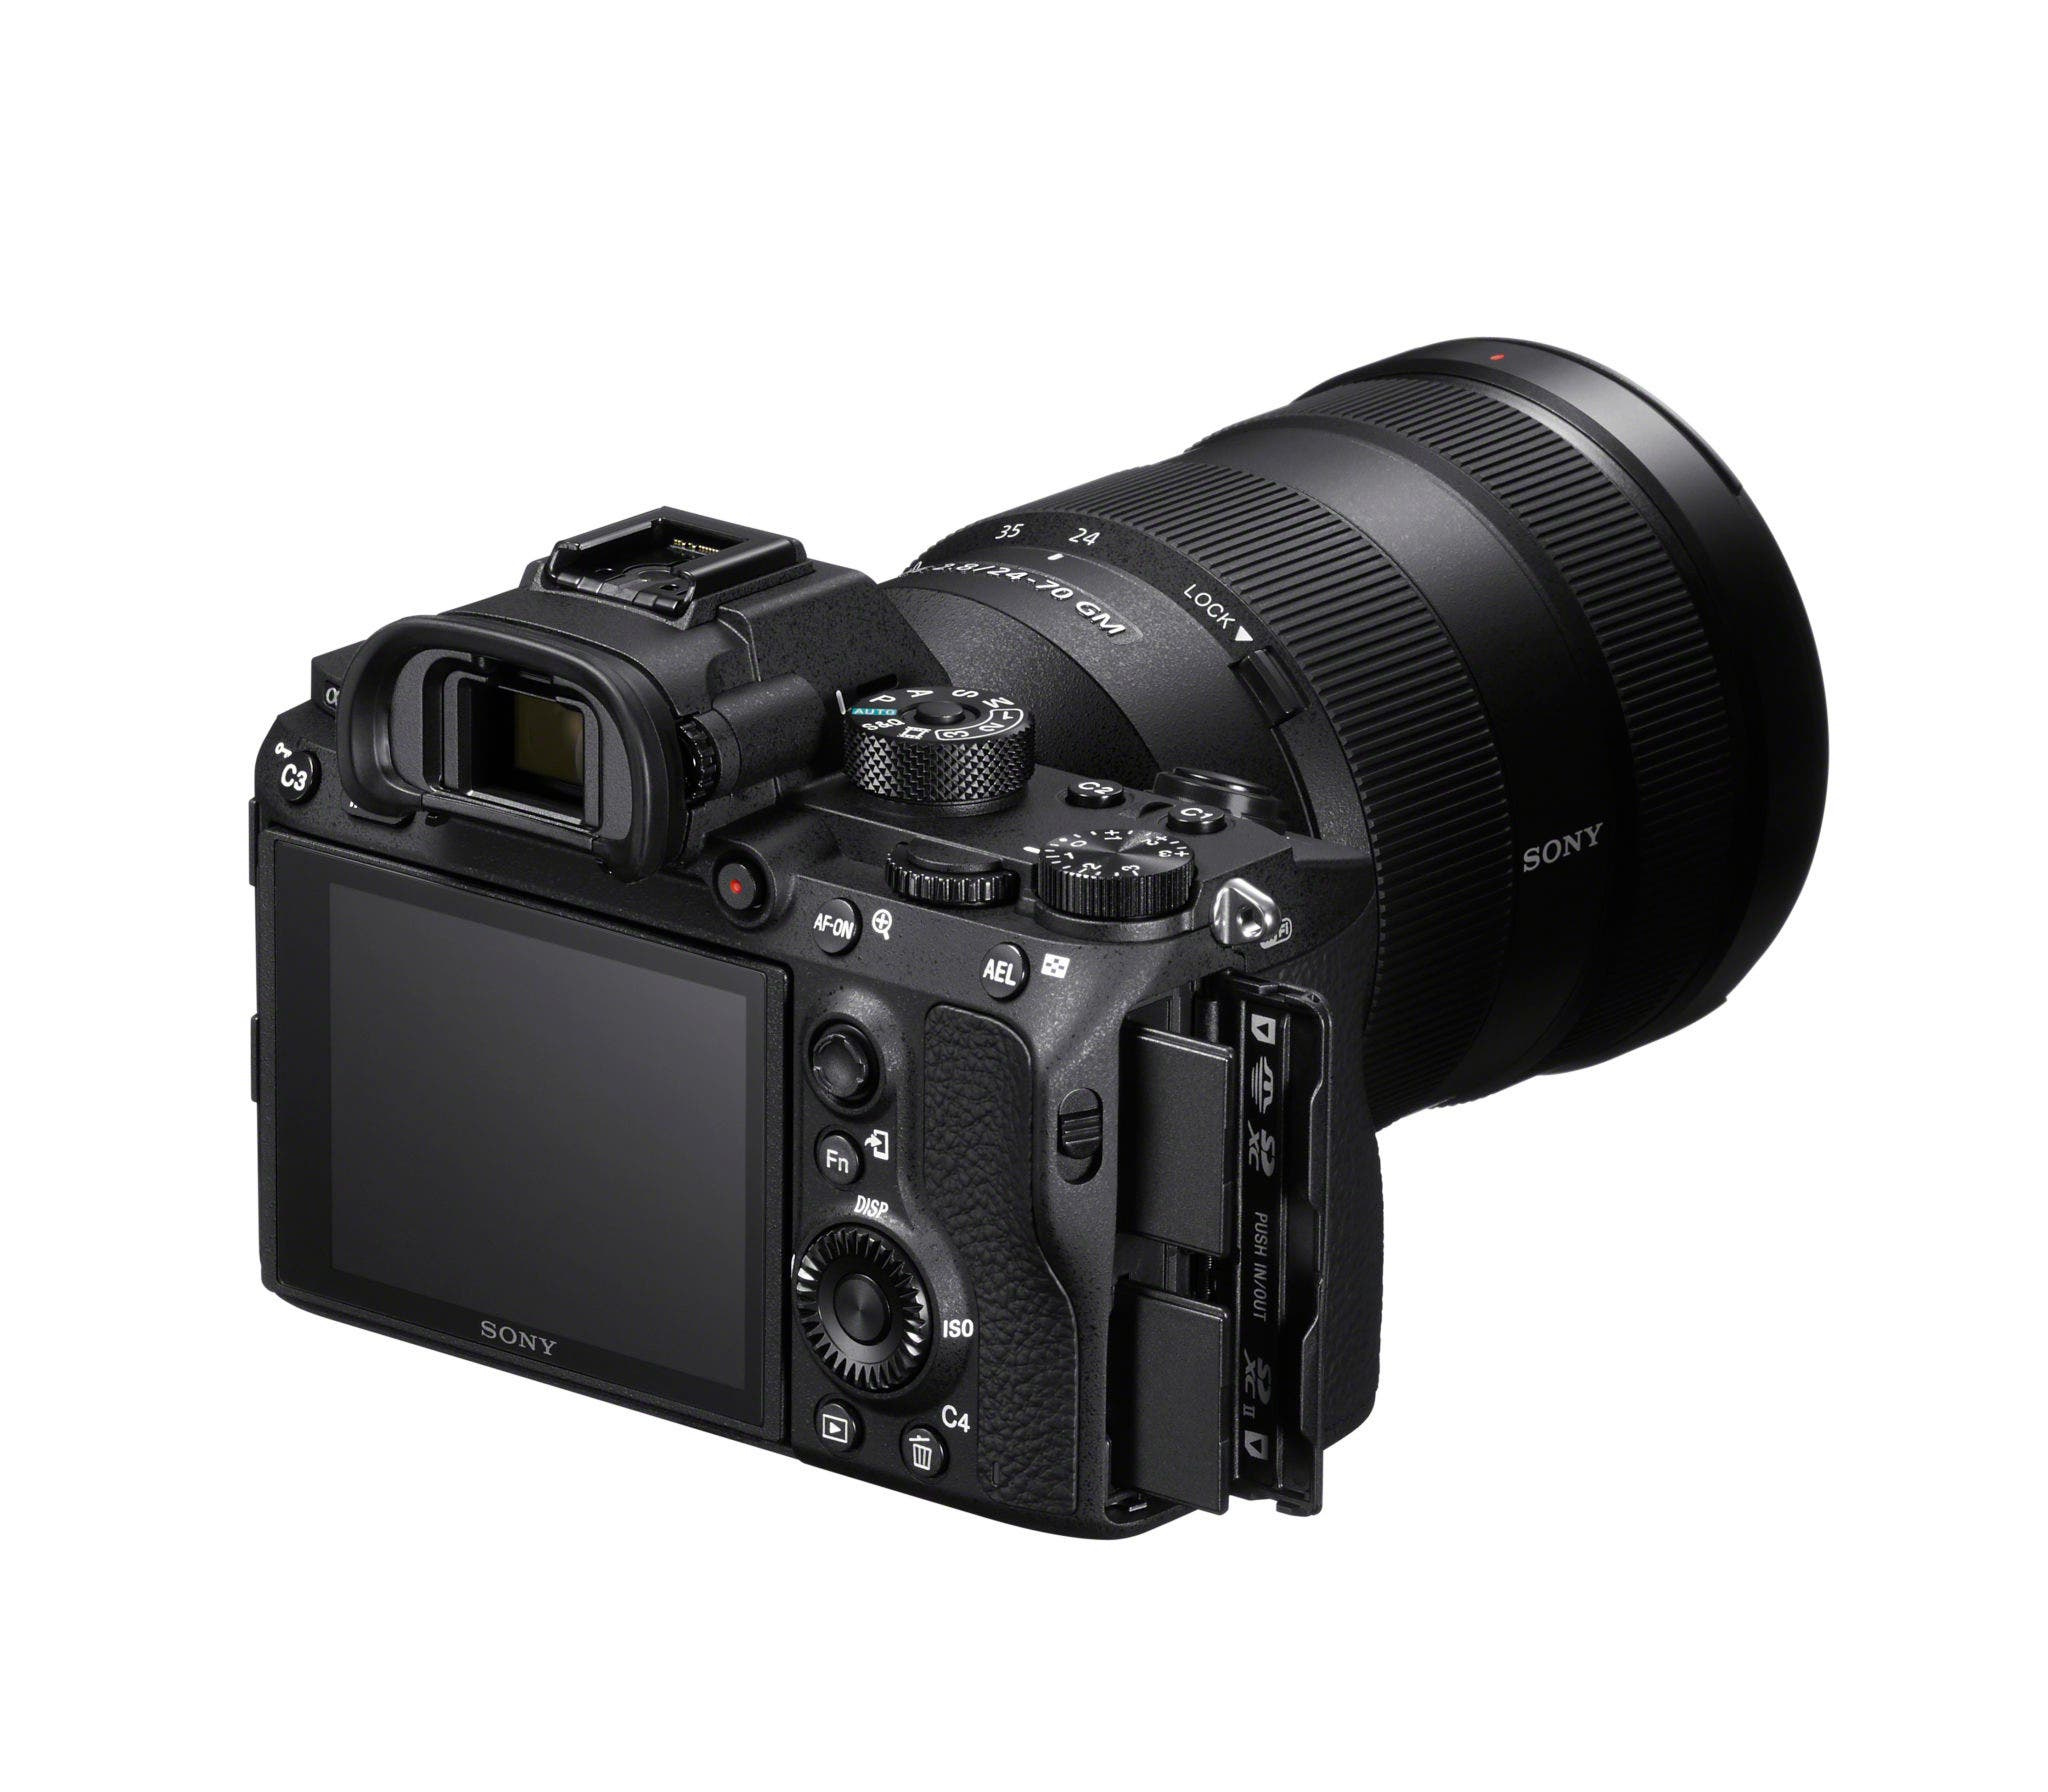 the sony a7r iii features 15 stops of dynamic range